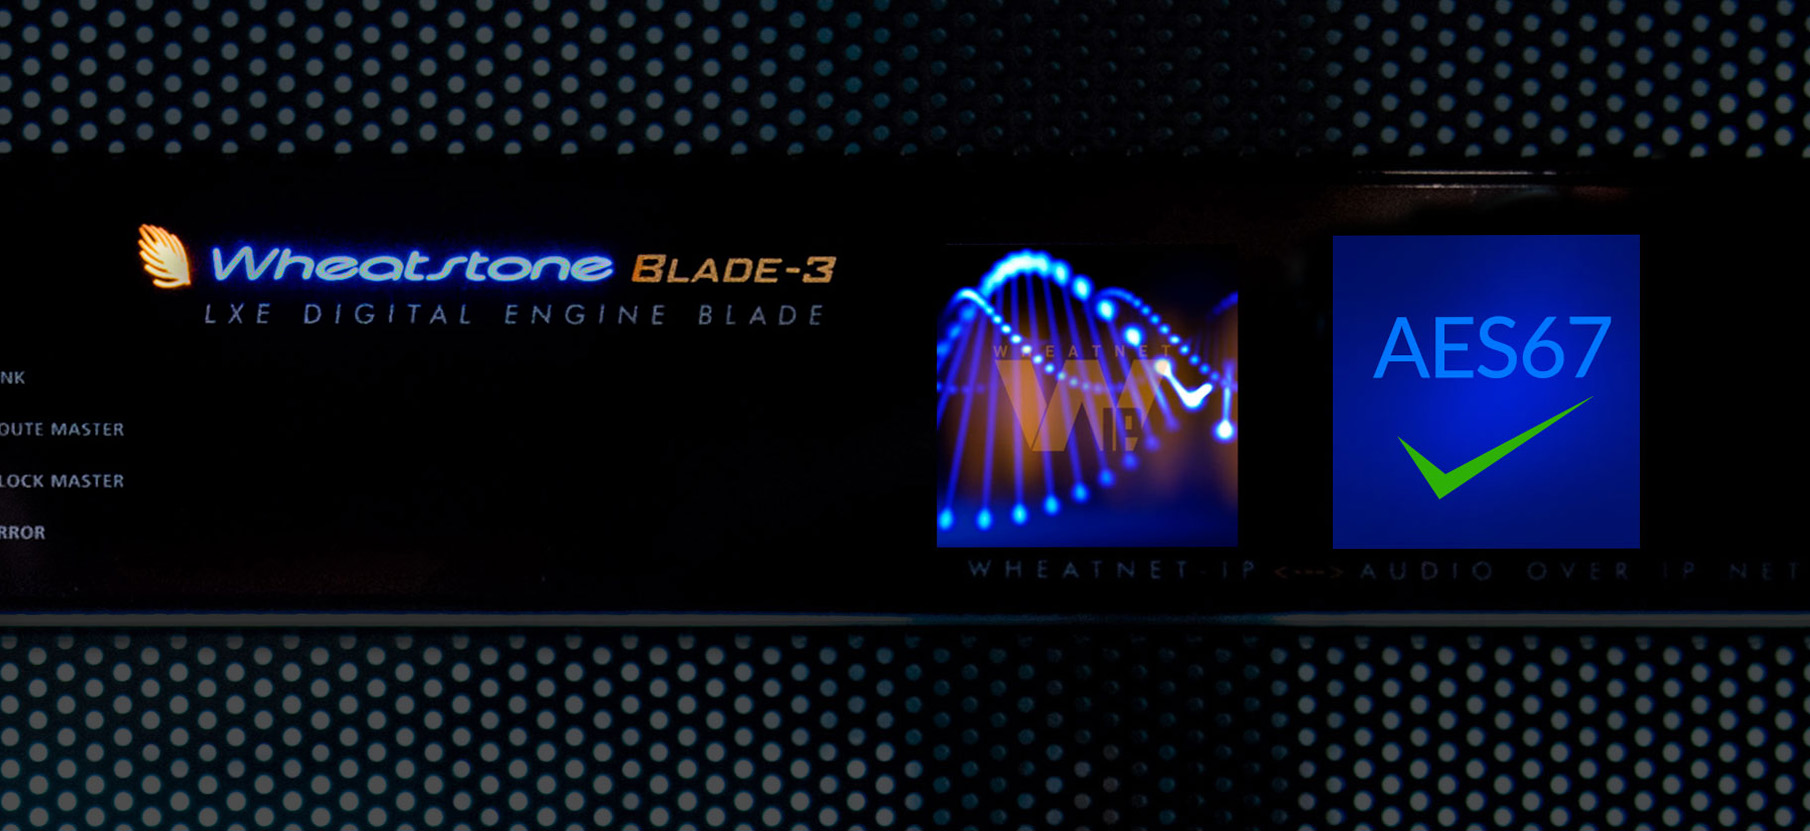 BLADES AES67